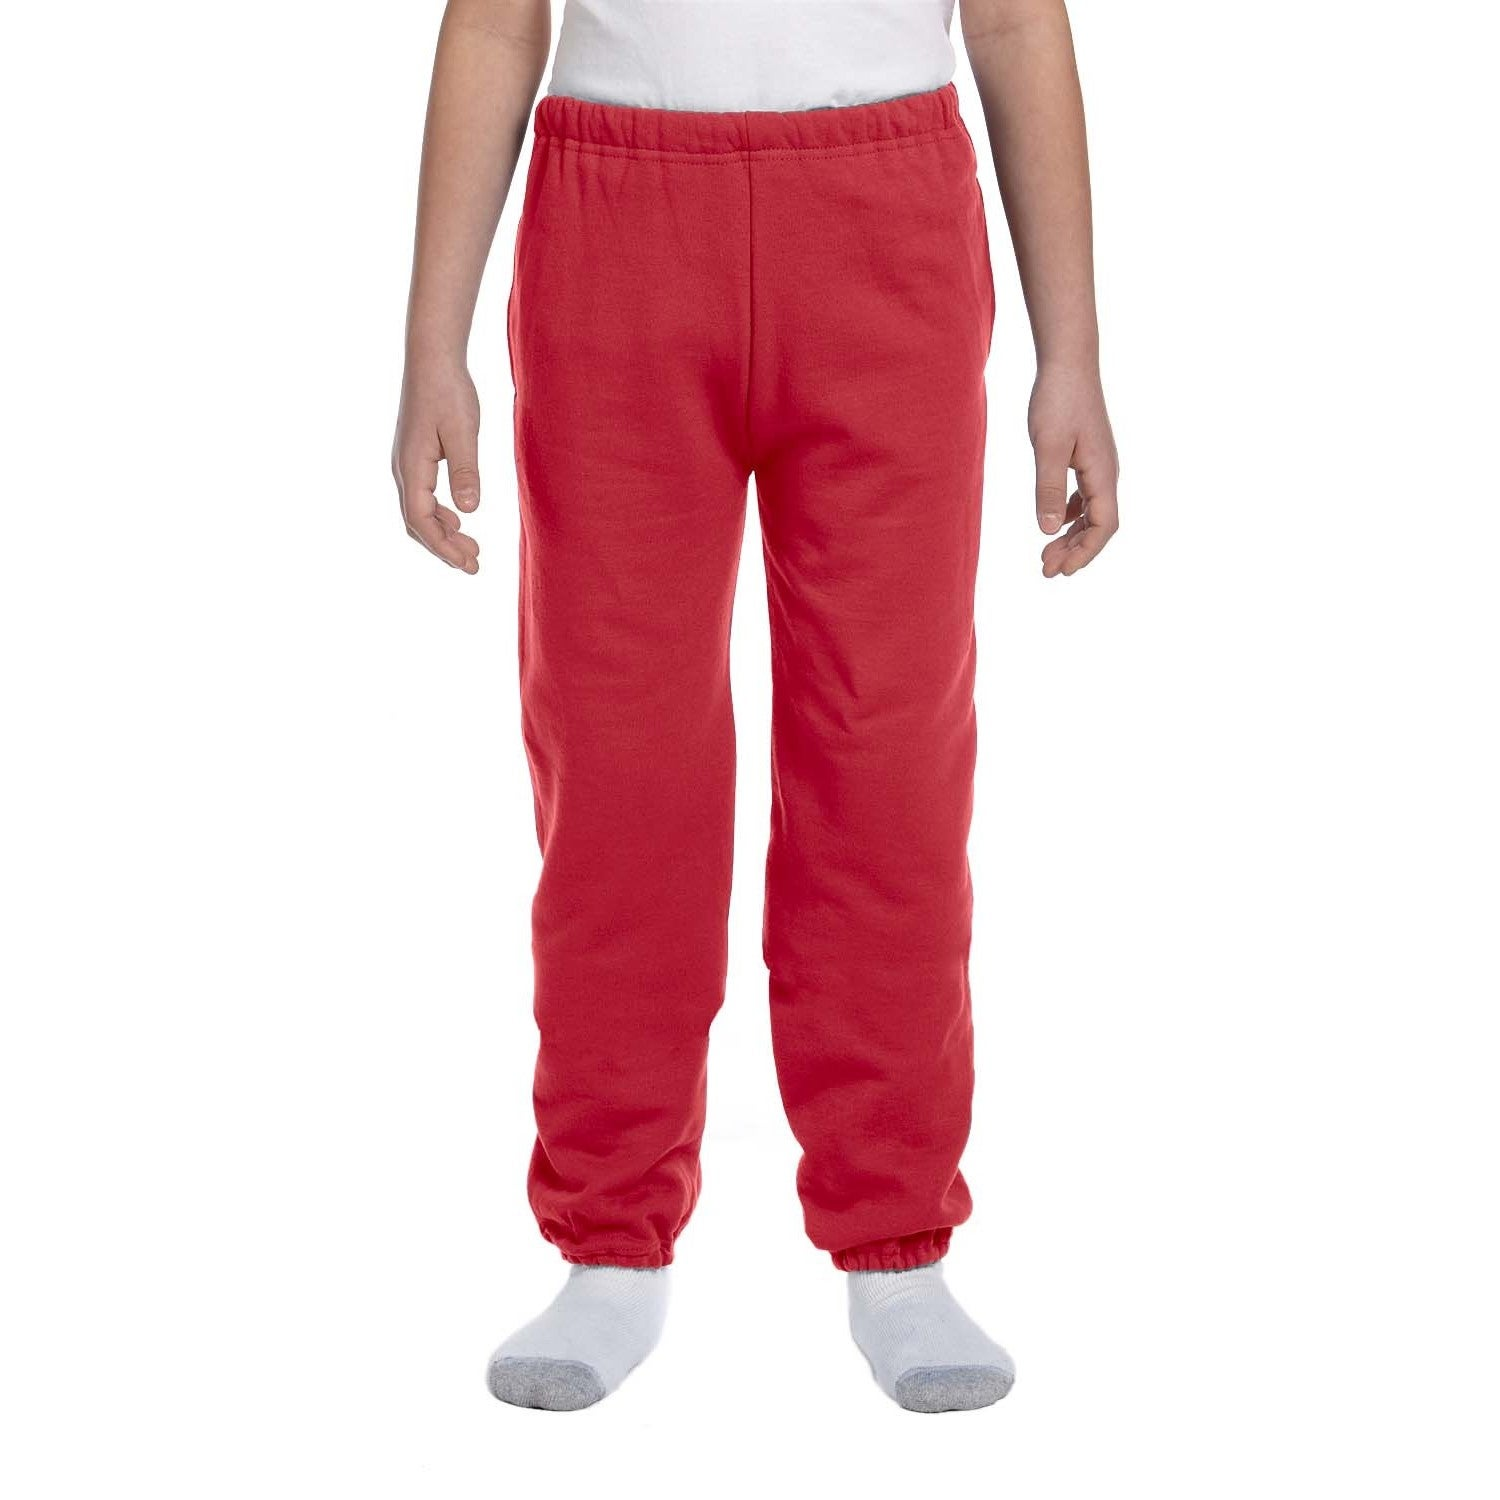 Super Sweats Youth True Red Polyester Sweatpants with Poc...